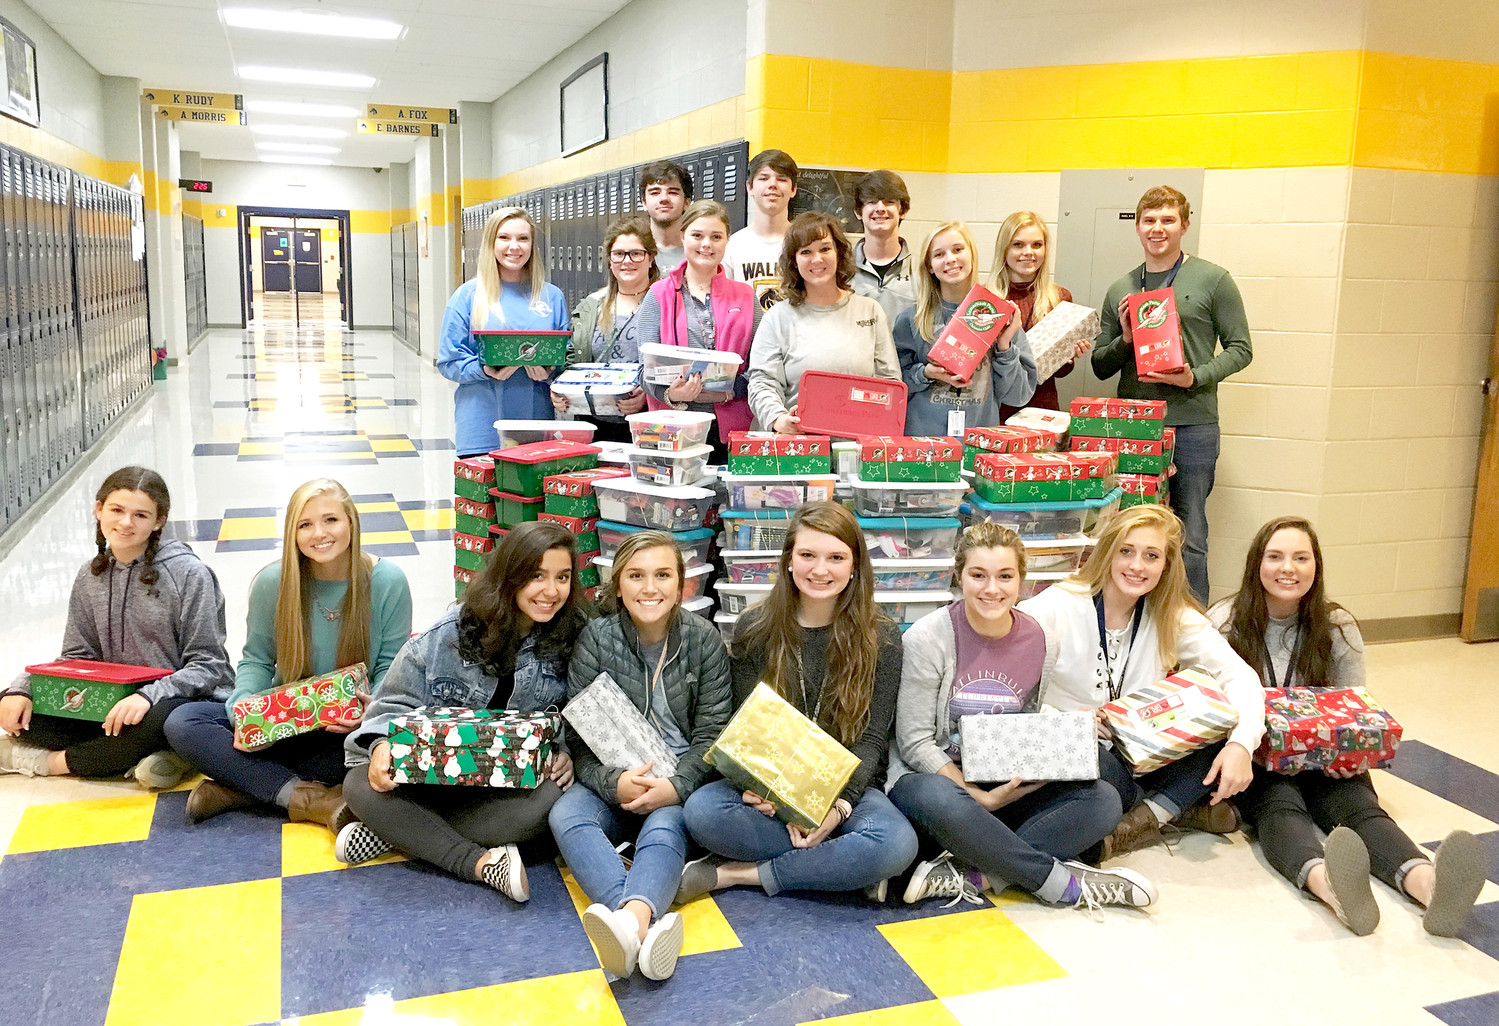 WALKER VALLEY HIGH SCHOOL'S Beta Club recently collected 206 Operation Christmas Child shoeboxes for the Samaritan's Purse organization. It is hoped these boxes, full of gifts such as toys and school supplies, will provide joy for needy children overseas.